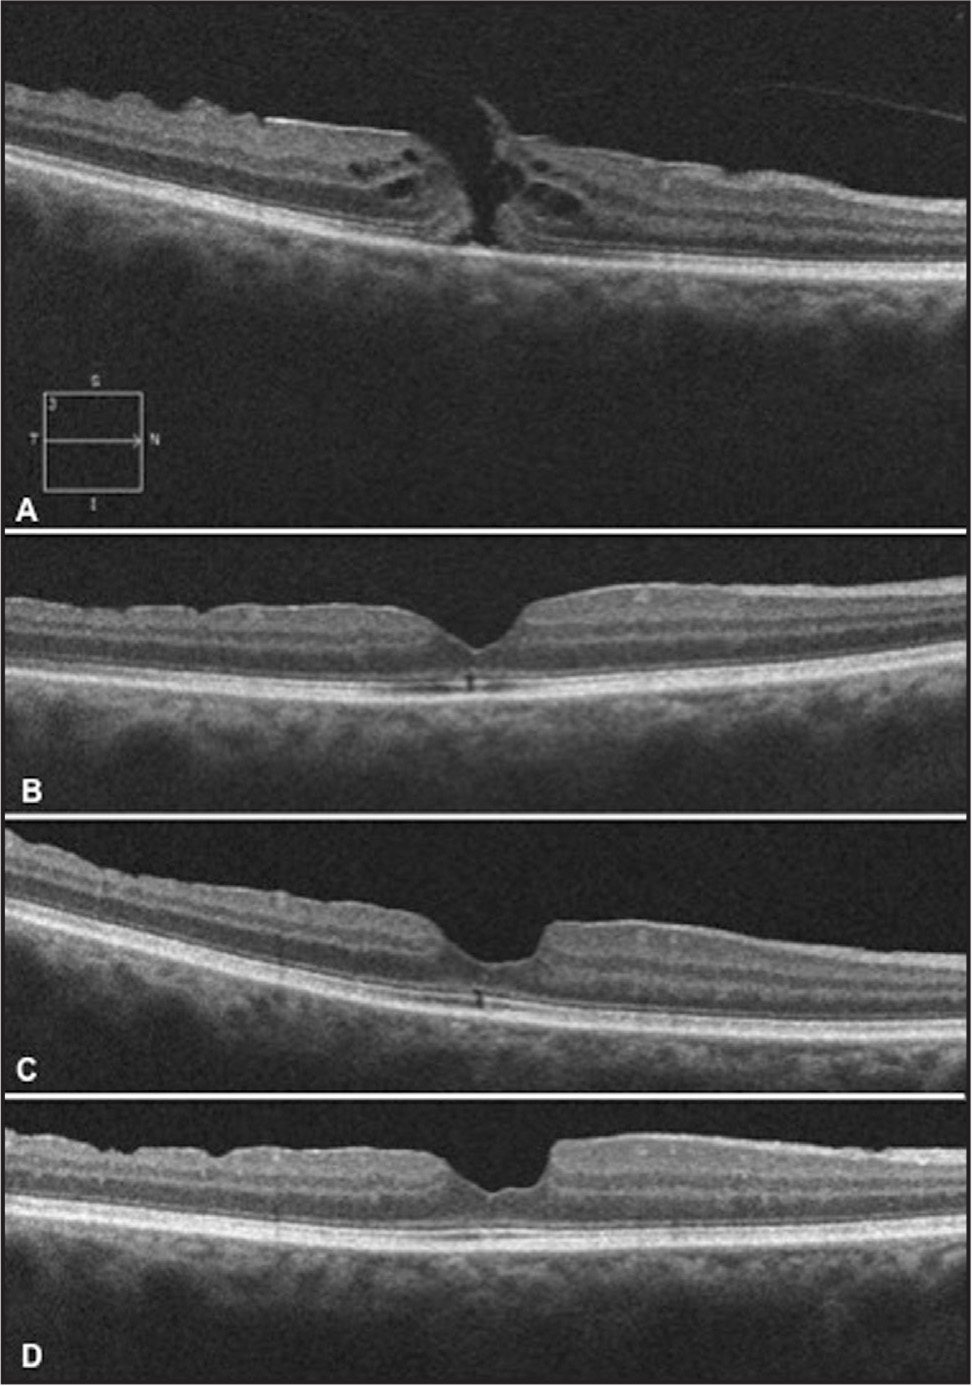 Spectral-domain optical coherence tomography images of the macula over time. (A) Baseline image shows a full-thickness macular hole (MH). (B) Postoperative image at 3 months shows disruption of the external limiting membrane (ELM), inner segment/outer segment (IS/OS) junction, and cone outer-segment tips (COST) line with visual acuity (VA) of 20/50. (C) Postoperative image at 1 year shows an improved external limiting membrane, but slight persistent disruption of the IS/OS junction and COST line with VA of 20/30. (D) Postoperative image at 2 years shows recovered ELM, IS/OS junction, and COST line with VA of 20/20.